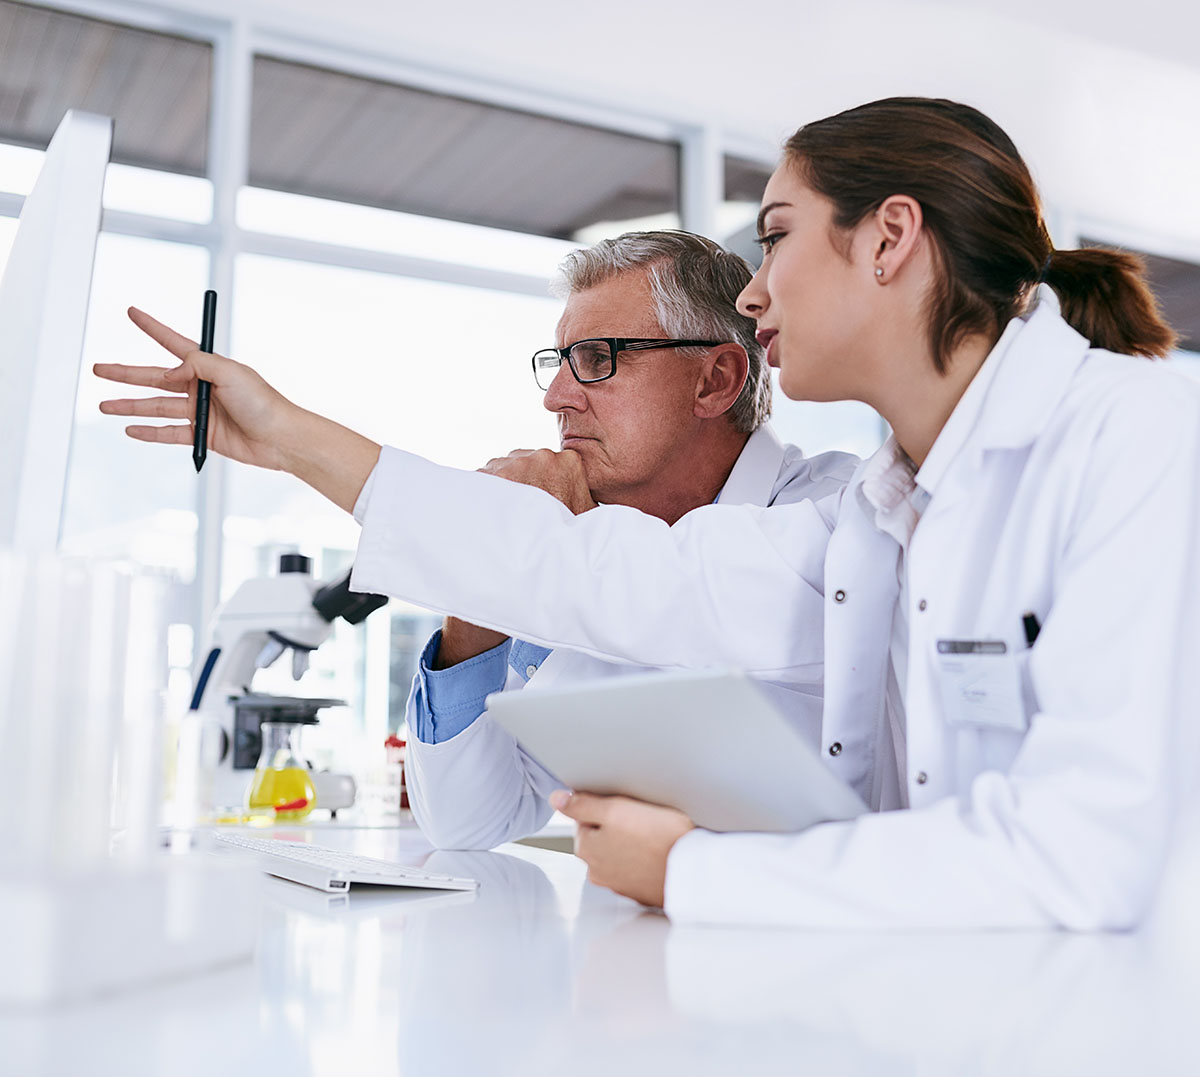 Shot of two scientists working together on a computer in a lab